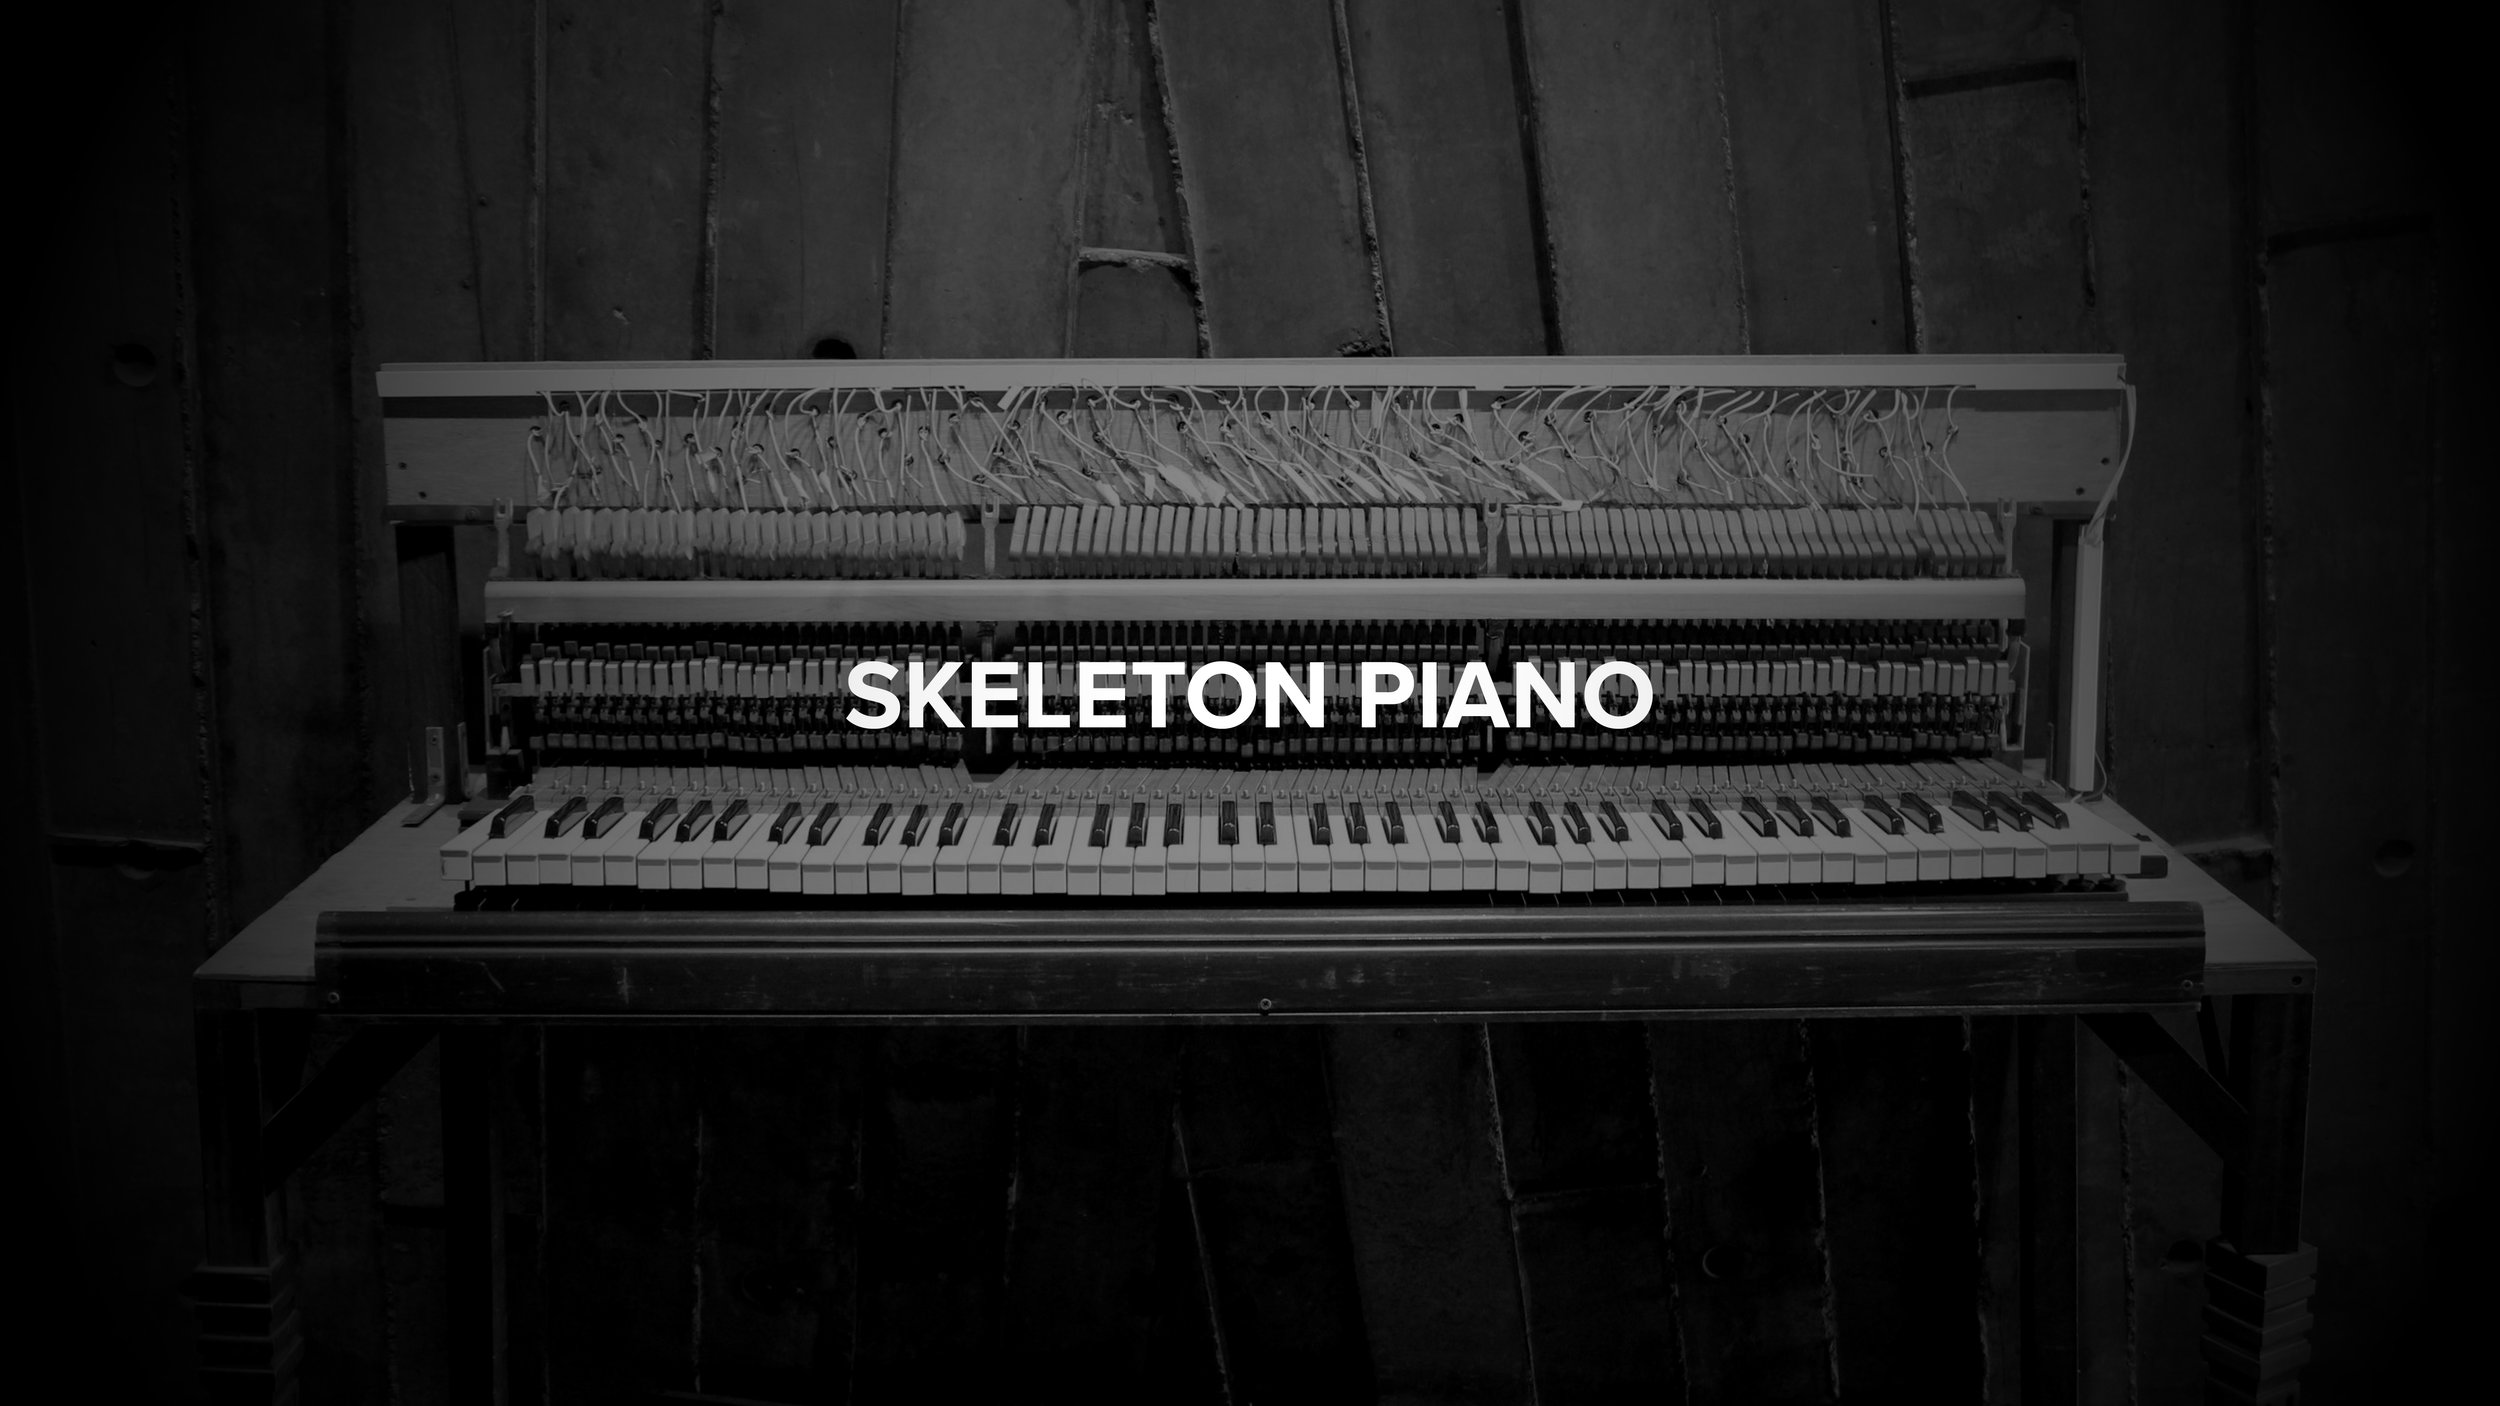 Skeleton Piano - A Mysterious dissection in beijing